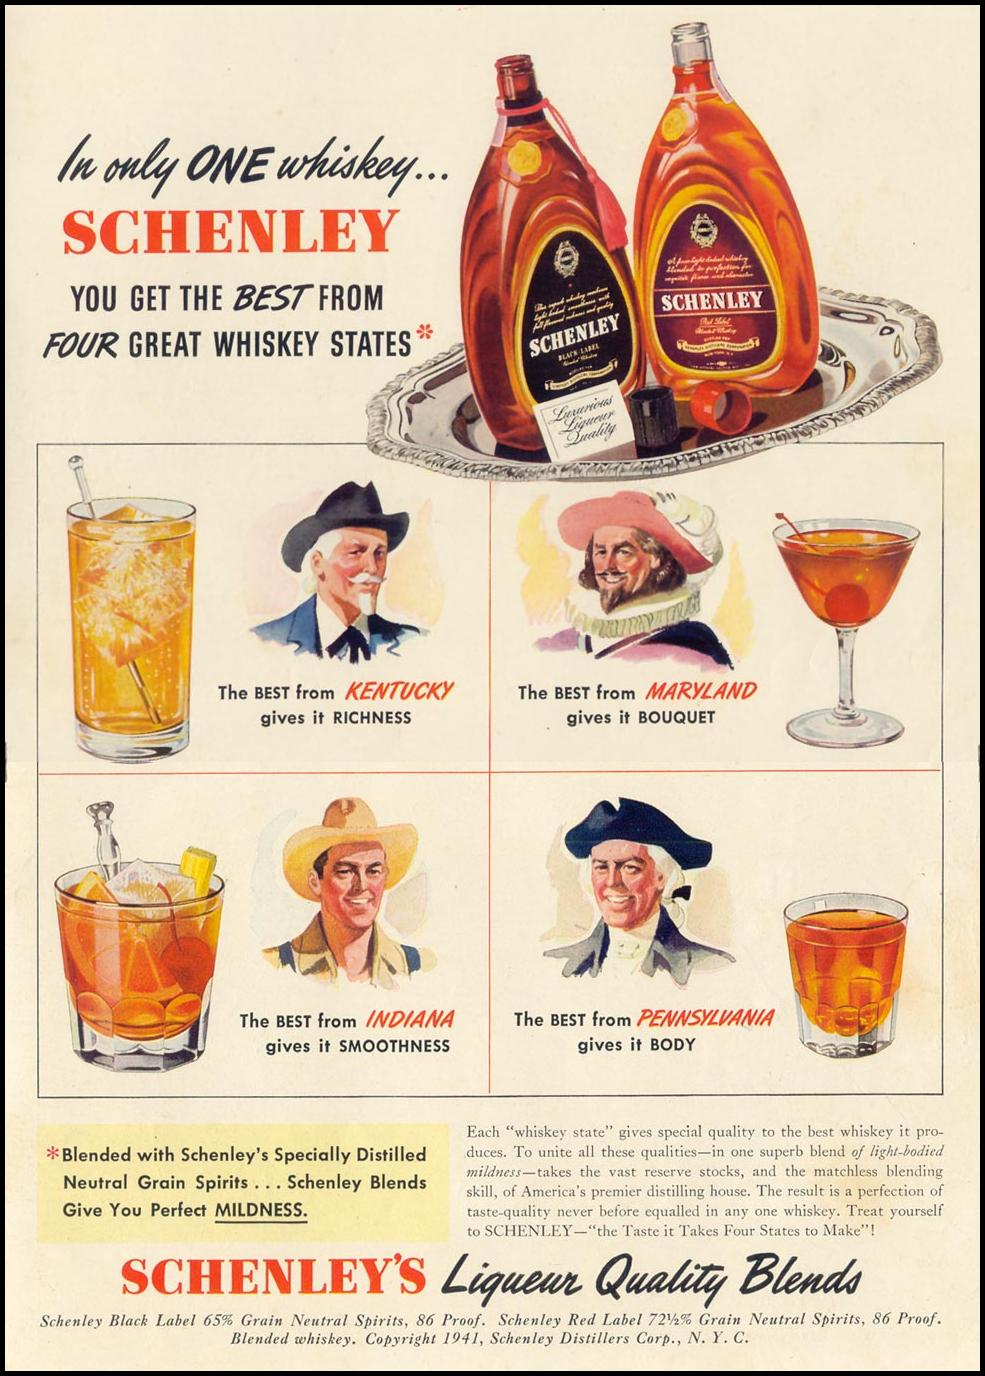 SCHENLEY'S LIQUEUR QUALITY BLENDED WHISKEY LIFE 10/13/1941 INSIDE BACK